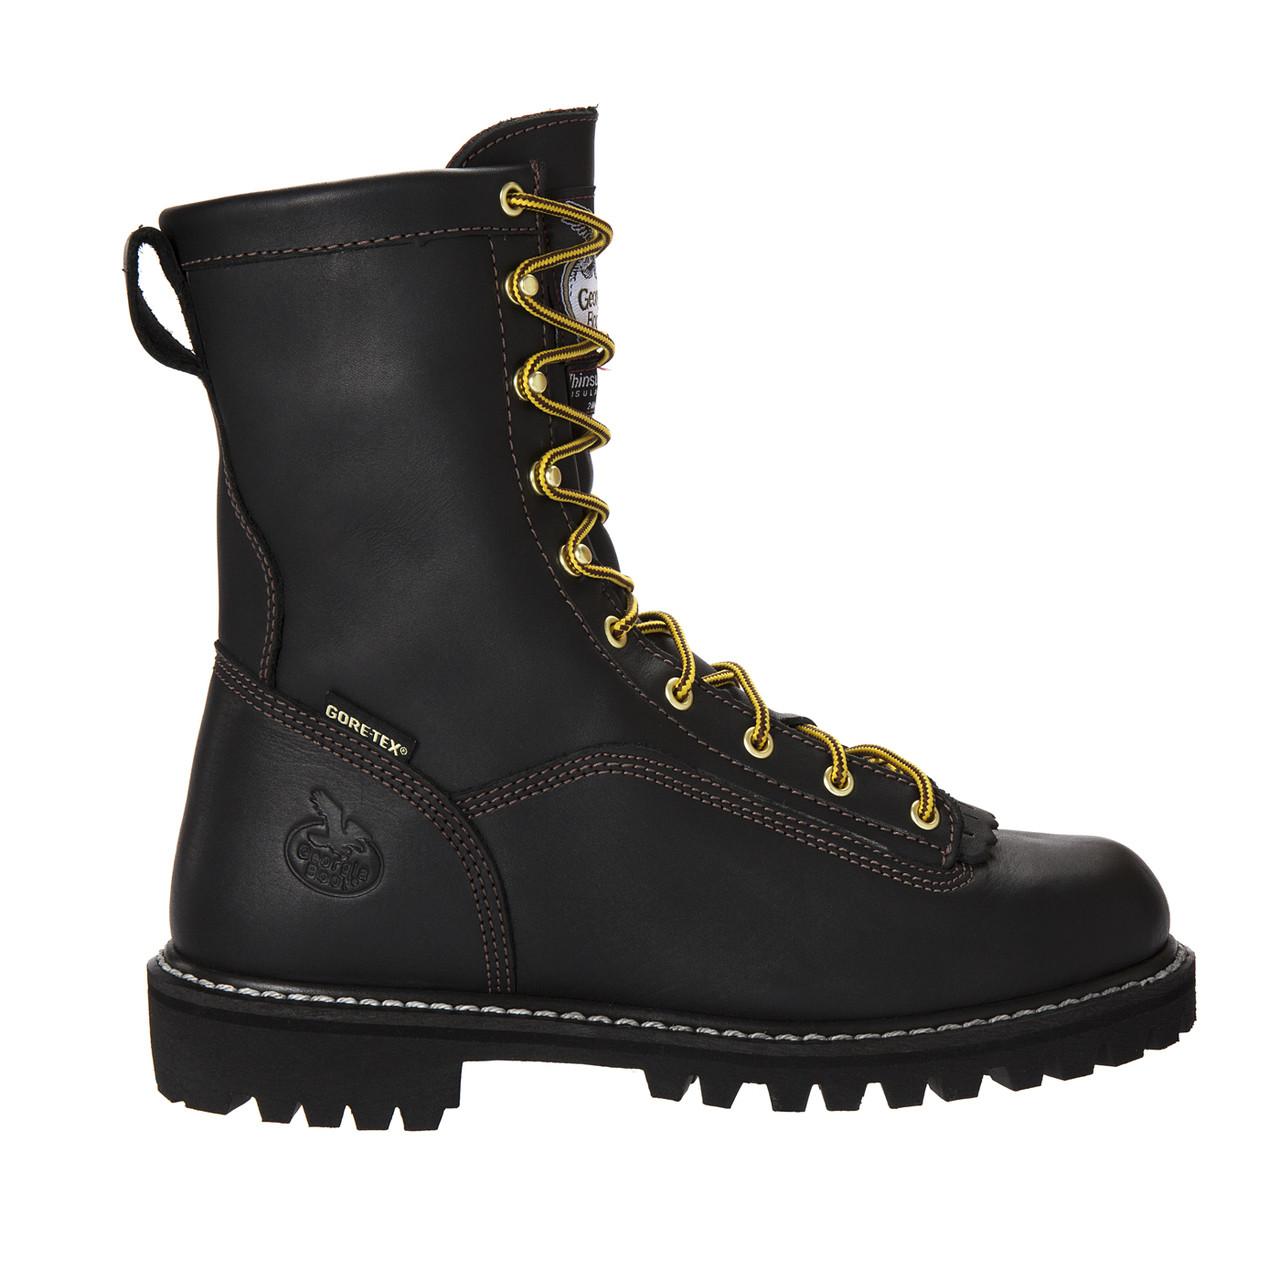 b69fbbd5d02 Georgia Boot Lace-to-Toe GORE-TEX Waterproof Insulated Work Boots G8040